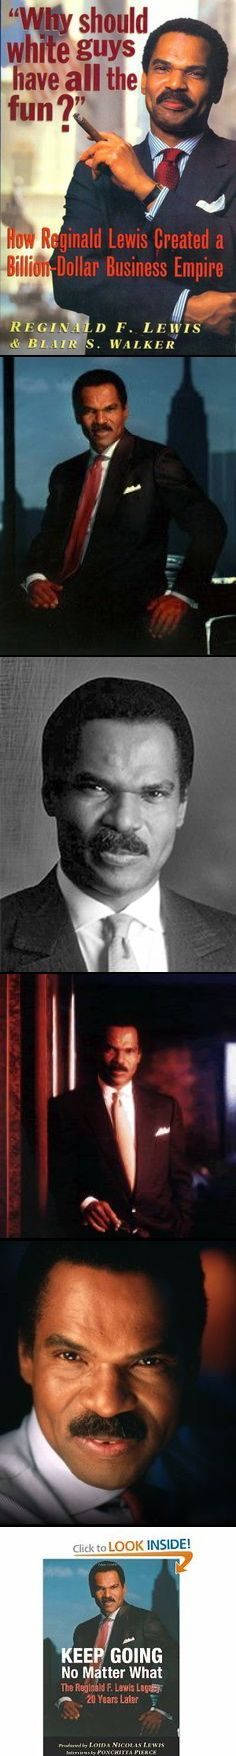 Reginald F. Lewis. Successful Wall St. Businessman, Lawyer and Philanthropist... legendary black businessman who was the 1st to build a billion-dollar company.  A deal Reginald F. Lewis made after he purchased int'l giant Beatrice Foods promoted his American company to the biggest offshore leveraged buyout in history, making TLC Beatrice worth $1.5 billion  on Fortune's 500 list.